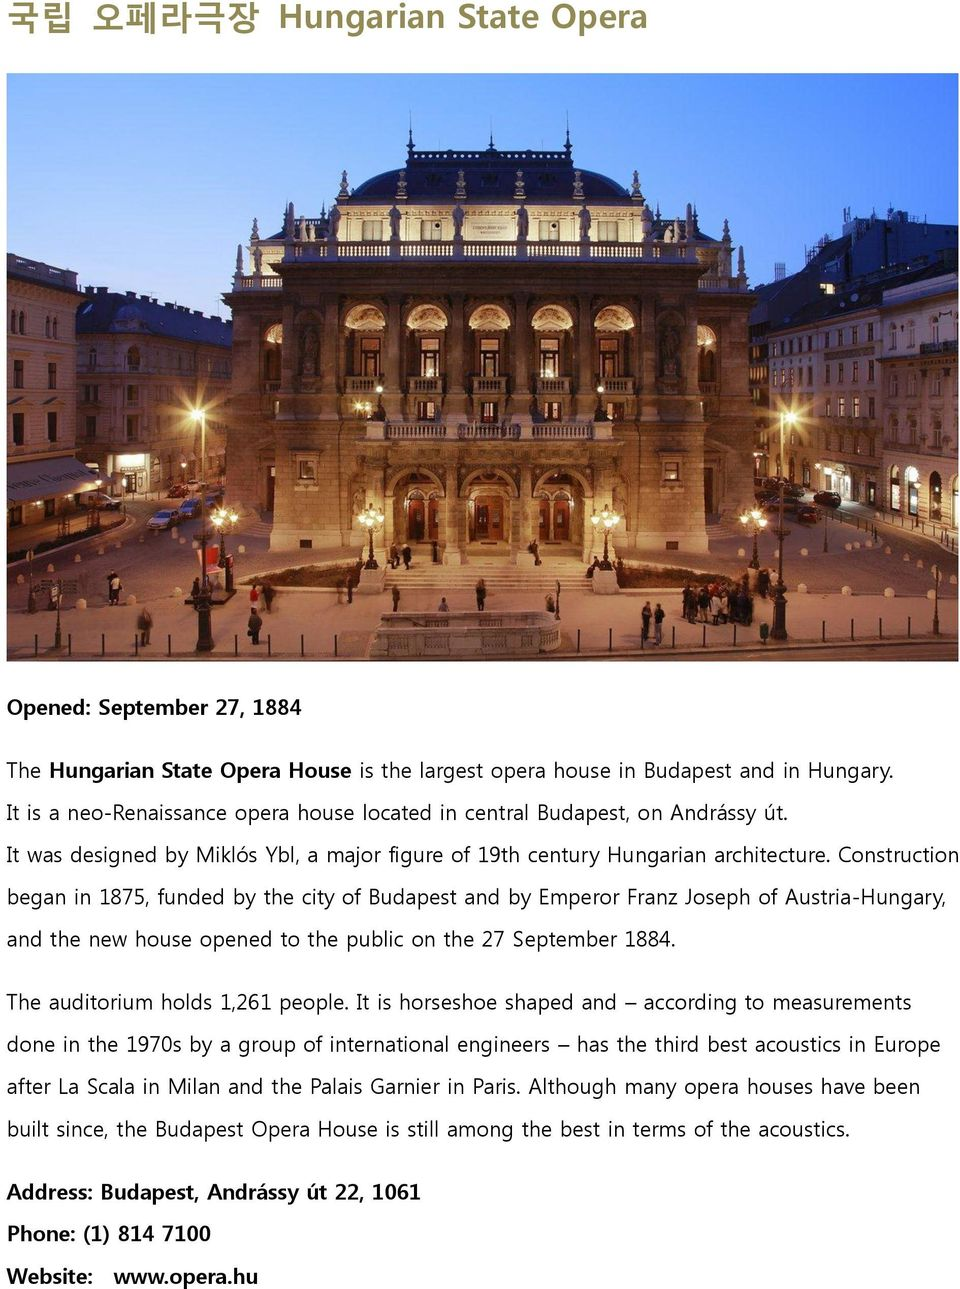 Construction began in 1875, funded by the city of Budapest and by Emperor Franz Joseph of Austria-Hungary, and the new house opened to the public on the 27 September 1884.